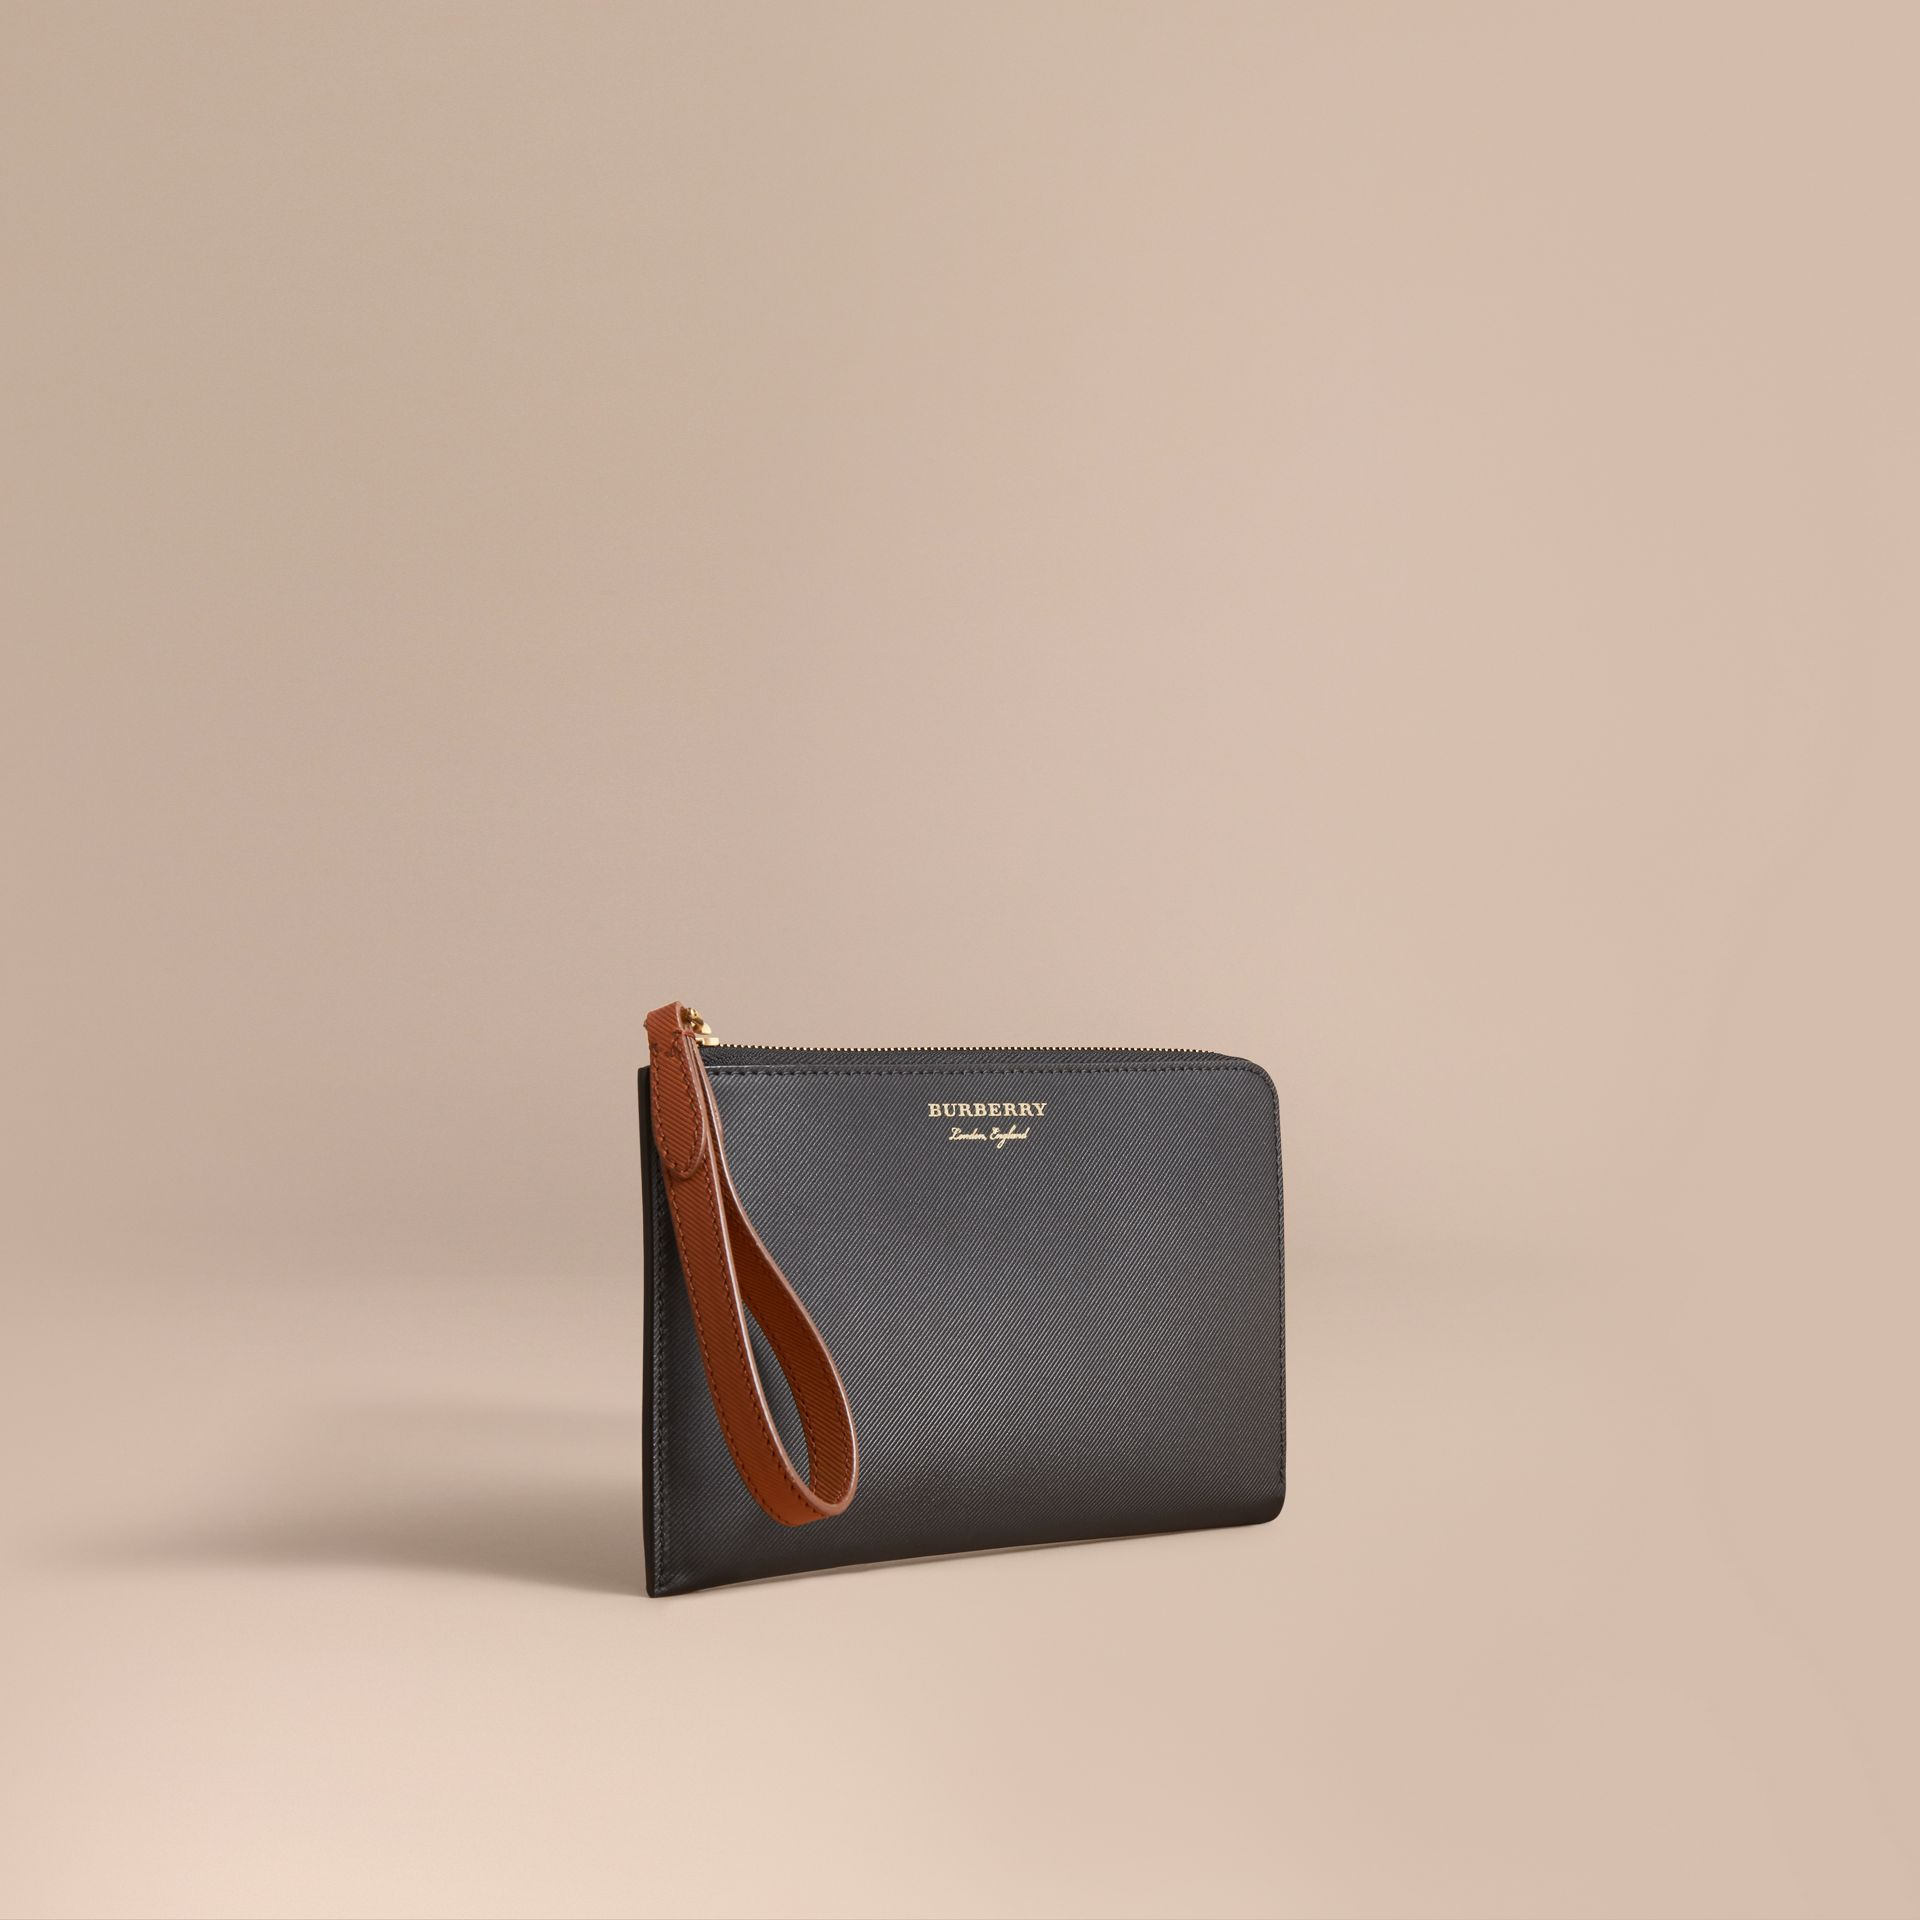 Two-tone Trench Leather Travel Wallet in Black - Men | Burberry Canada - gallery image 1